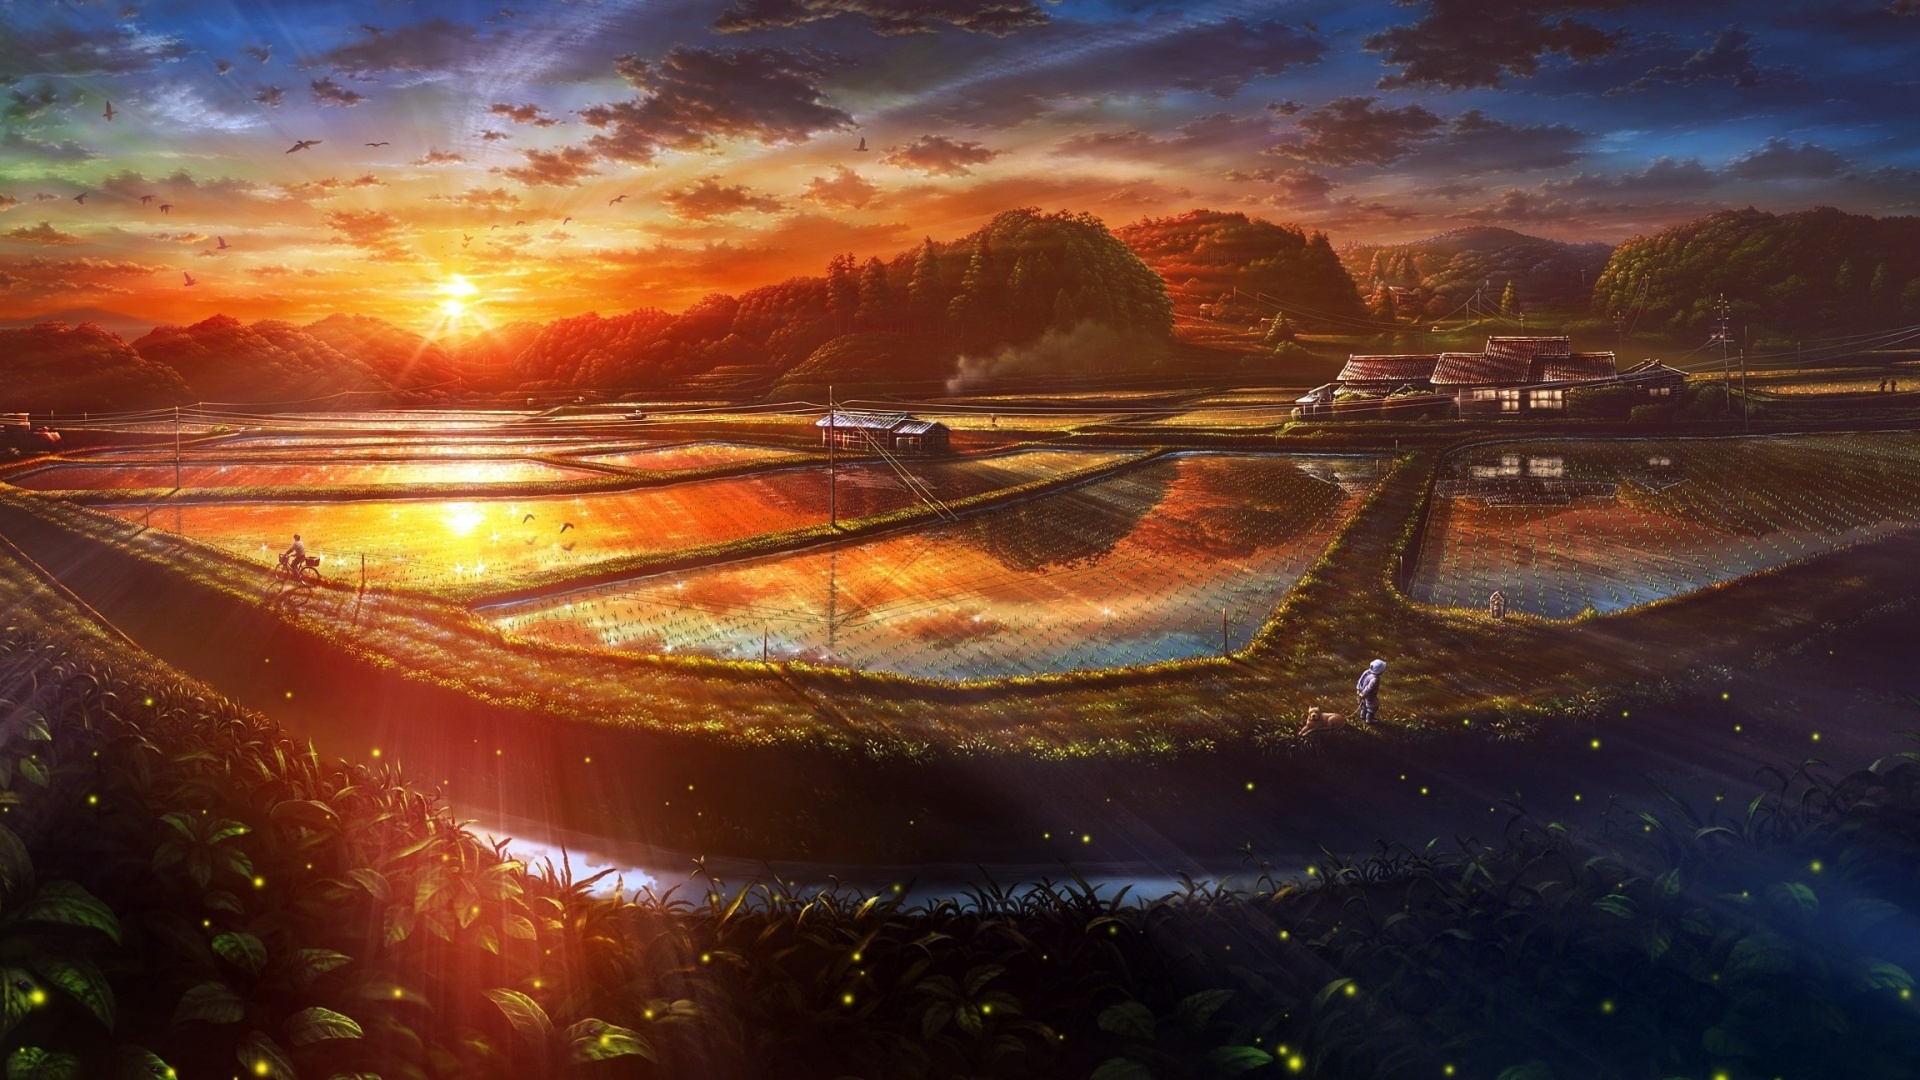 Drawn scenic amazing scenery Cover Download X Wallpaper Awesome